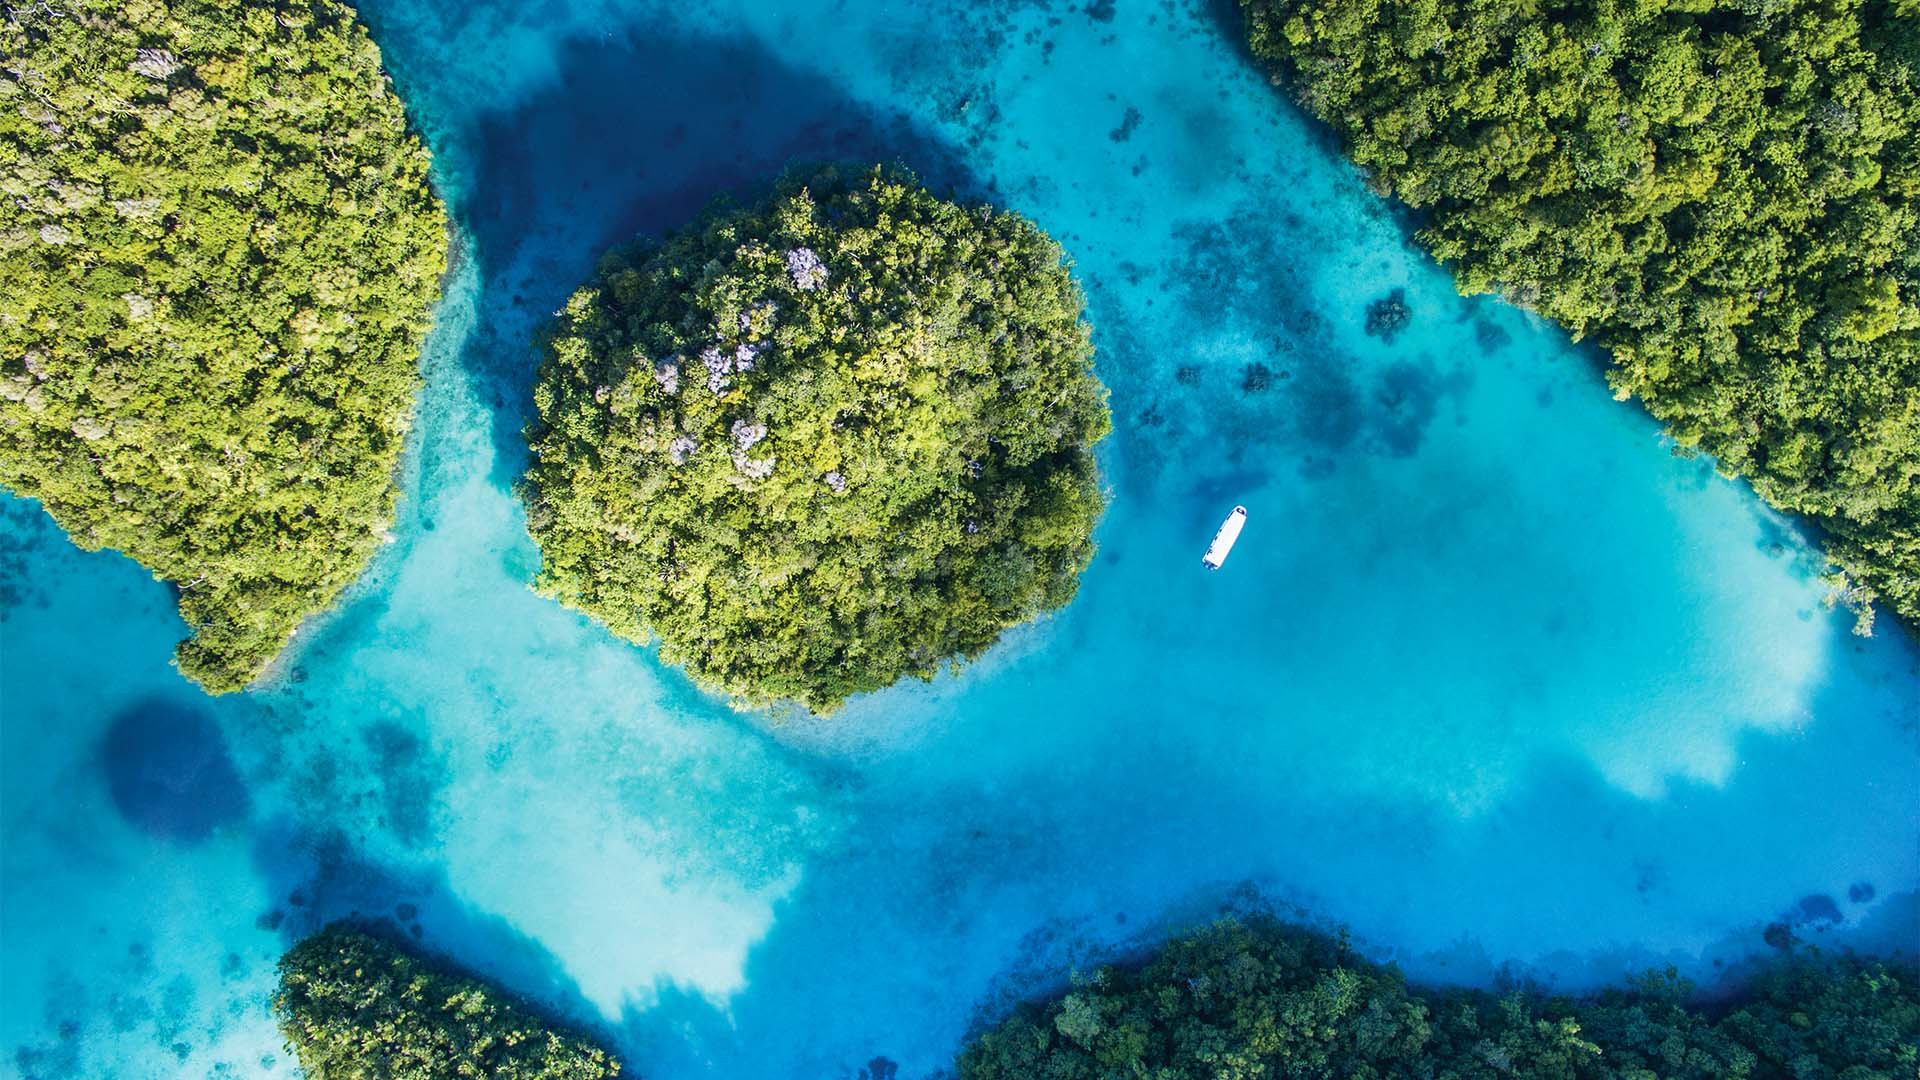 Aerial drone photo of islands in Palau from Drone Photography Masterclass